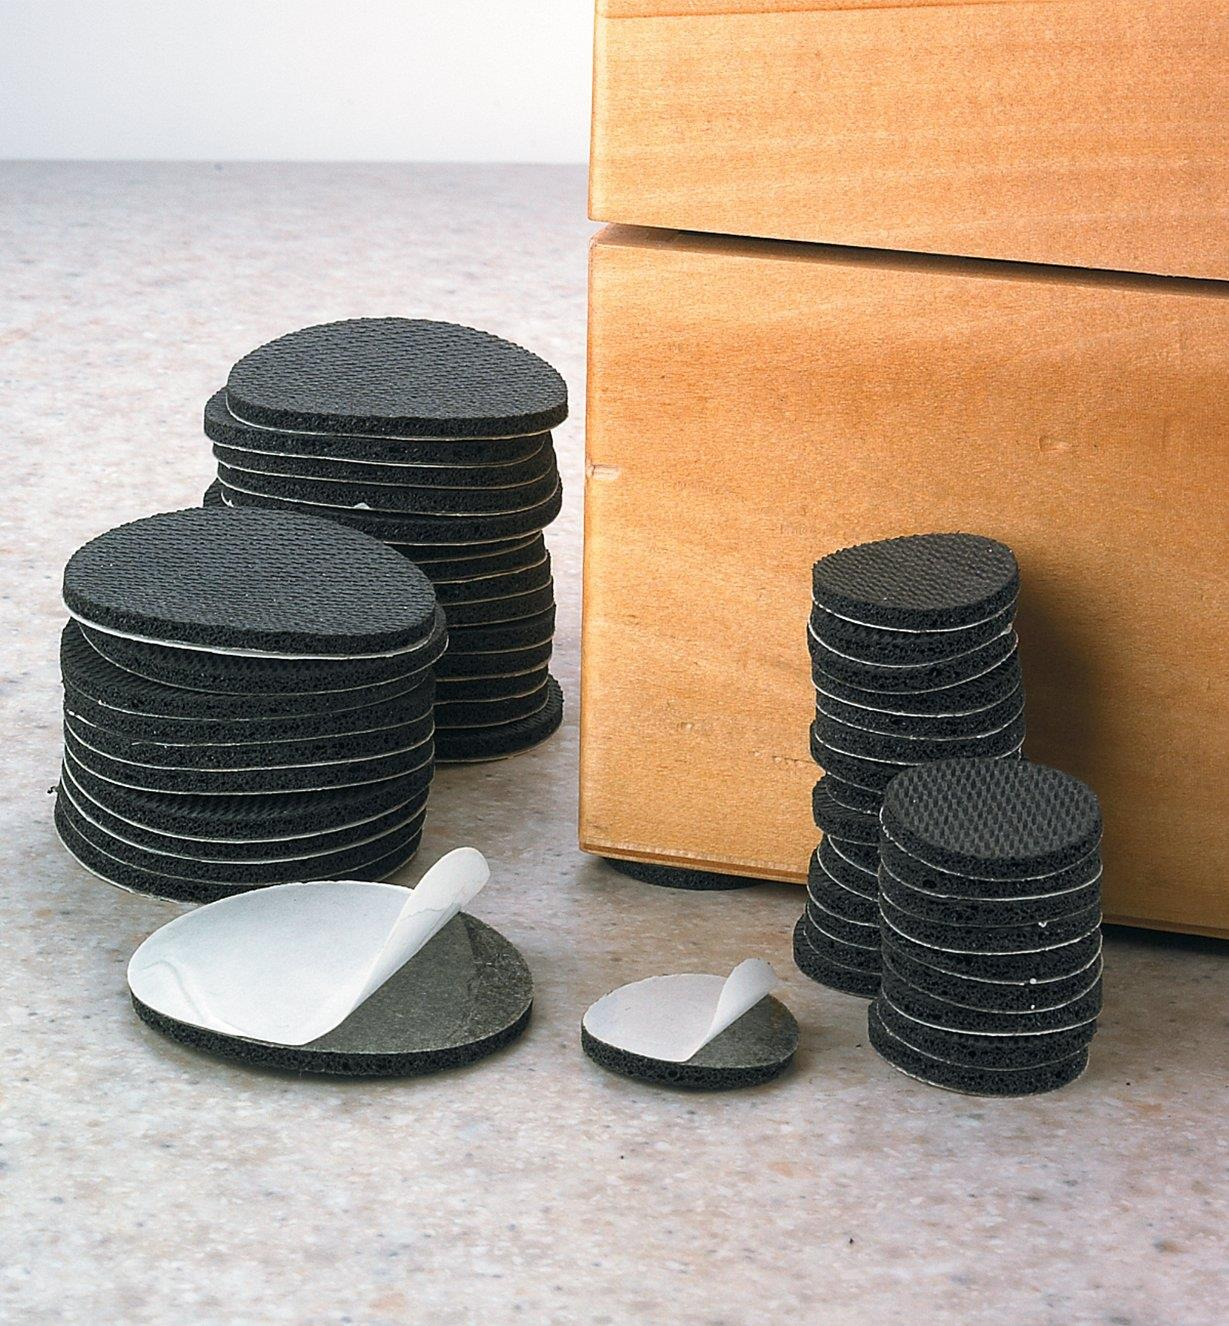 High-Friction Grip Discs